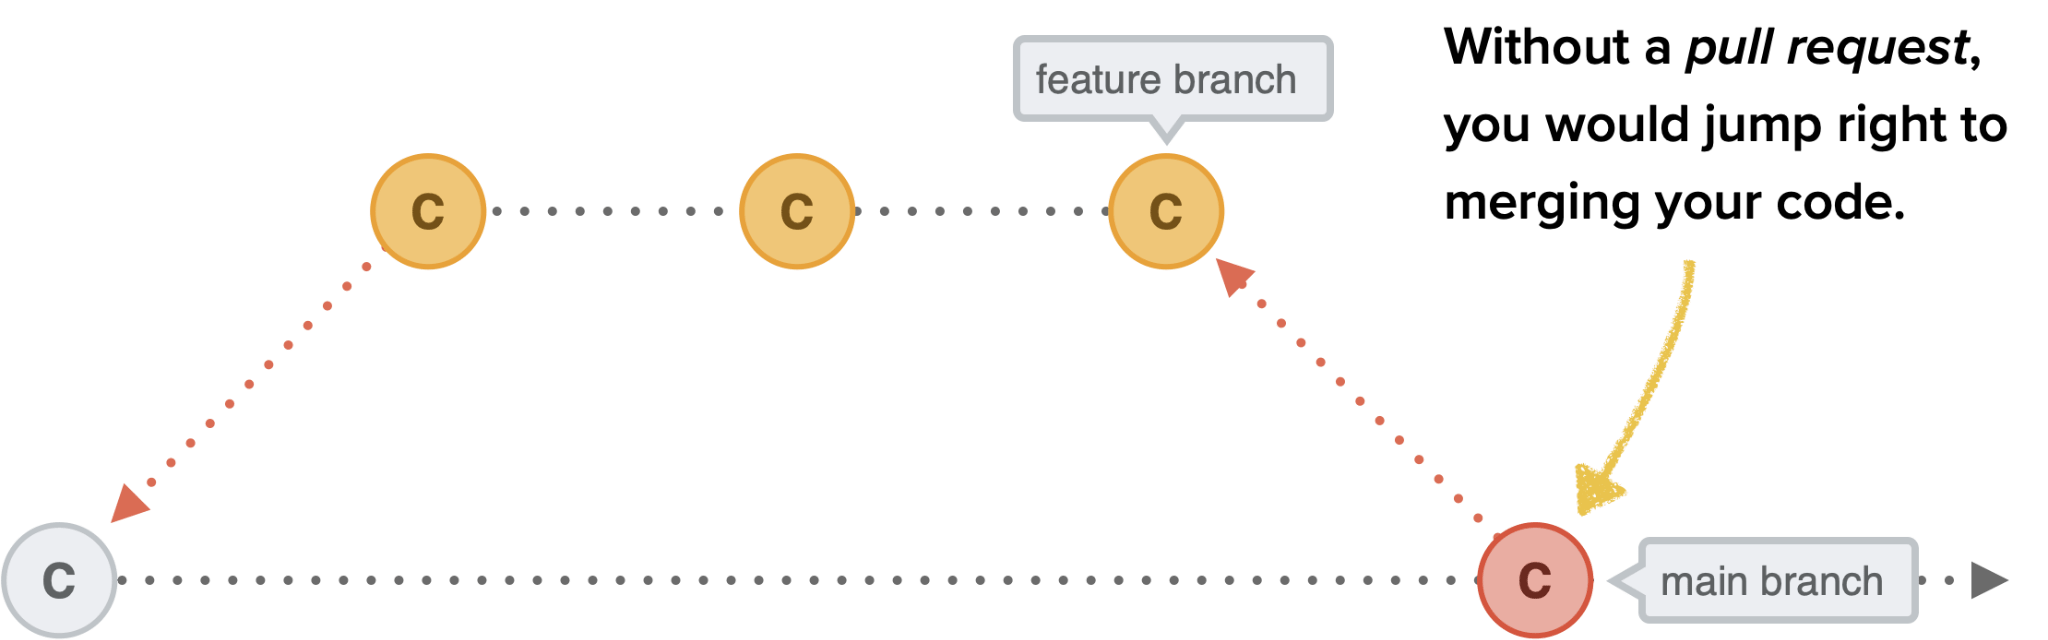 Without a pull request, you would jump right to merging your code.